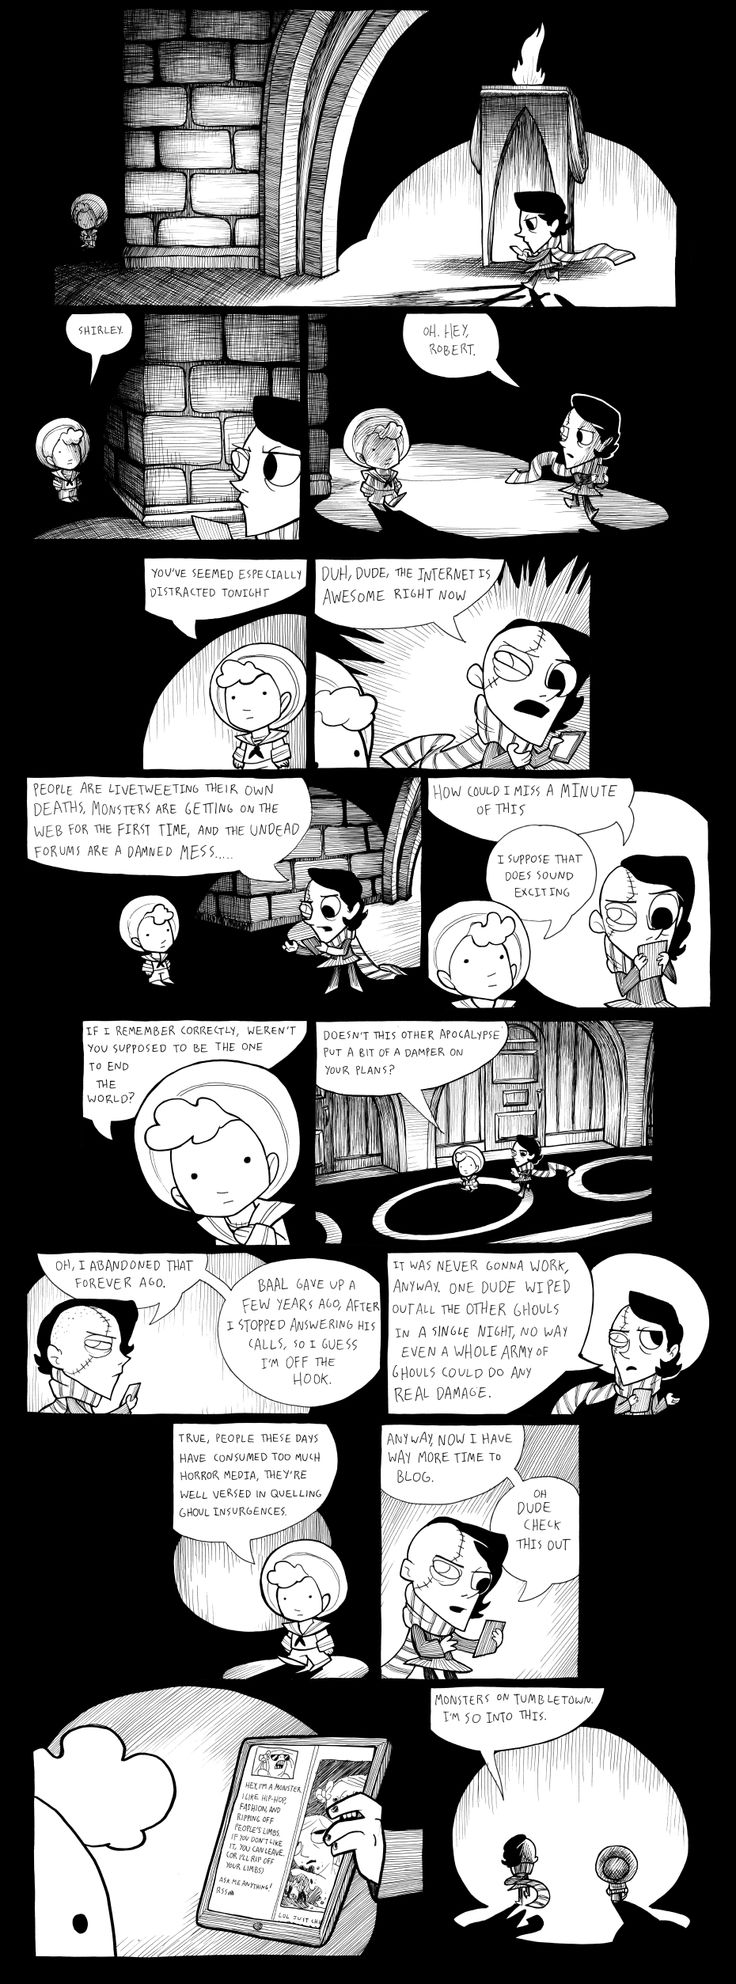 Best 107 Comics images on Pinterest | Other